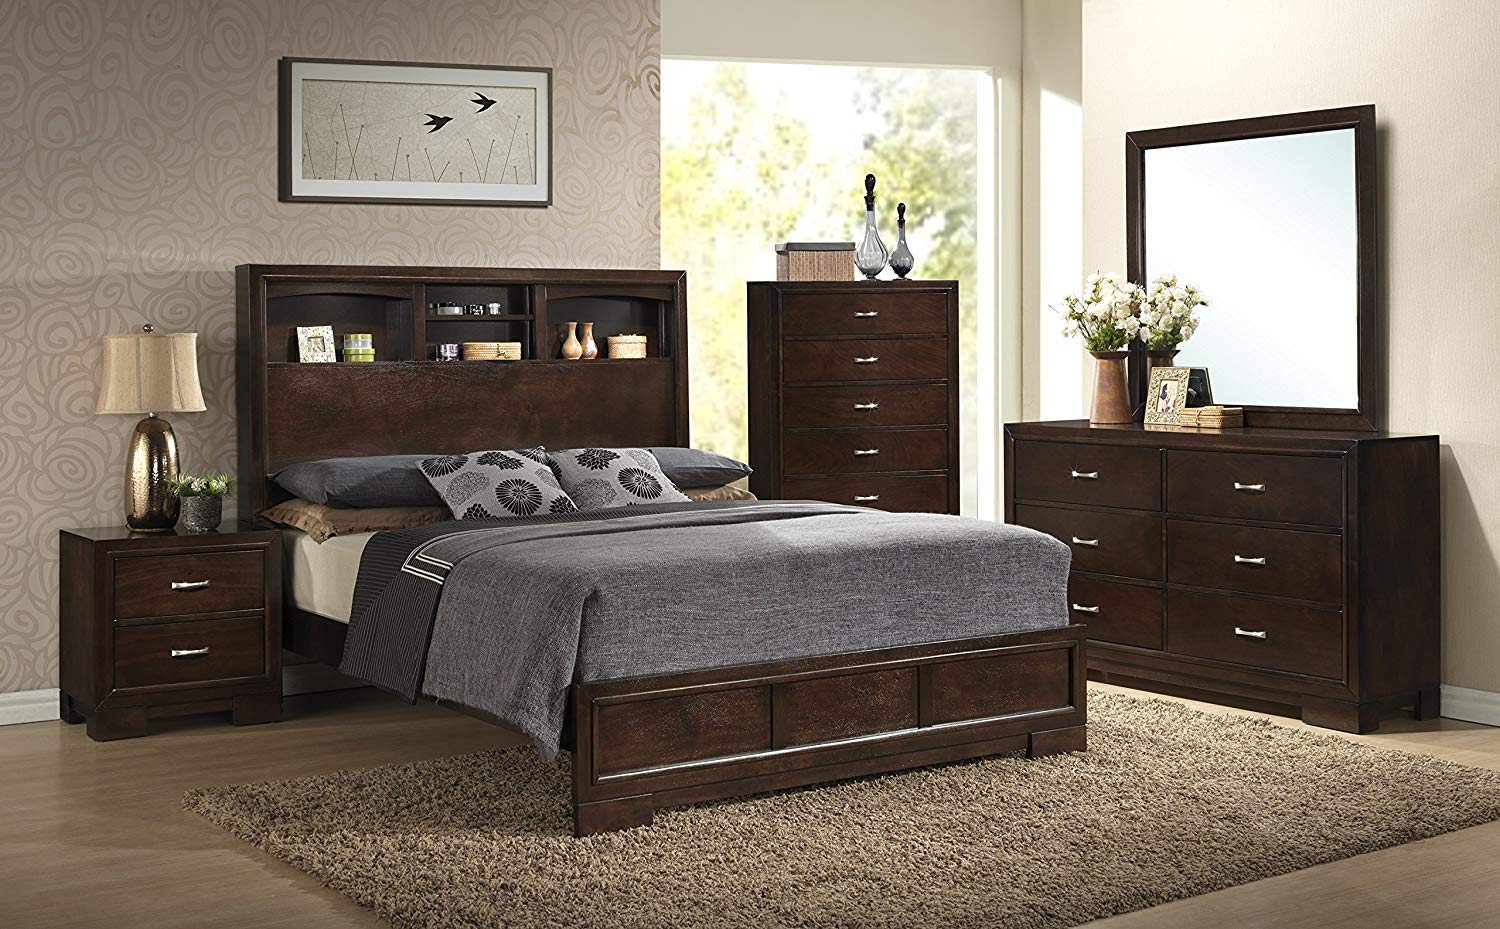 Roundhill Furniture 5 piece bedroom set queen